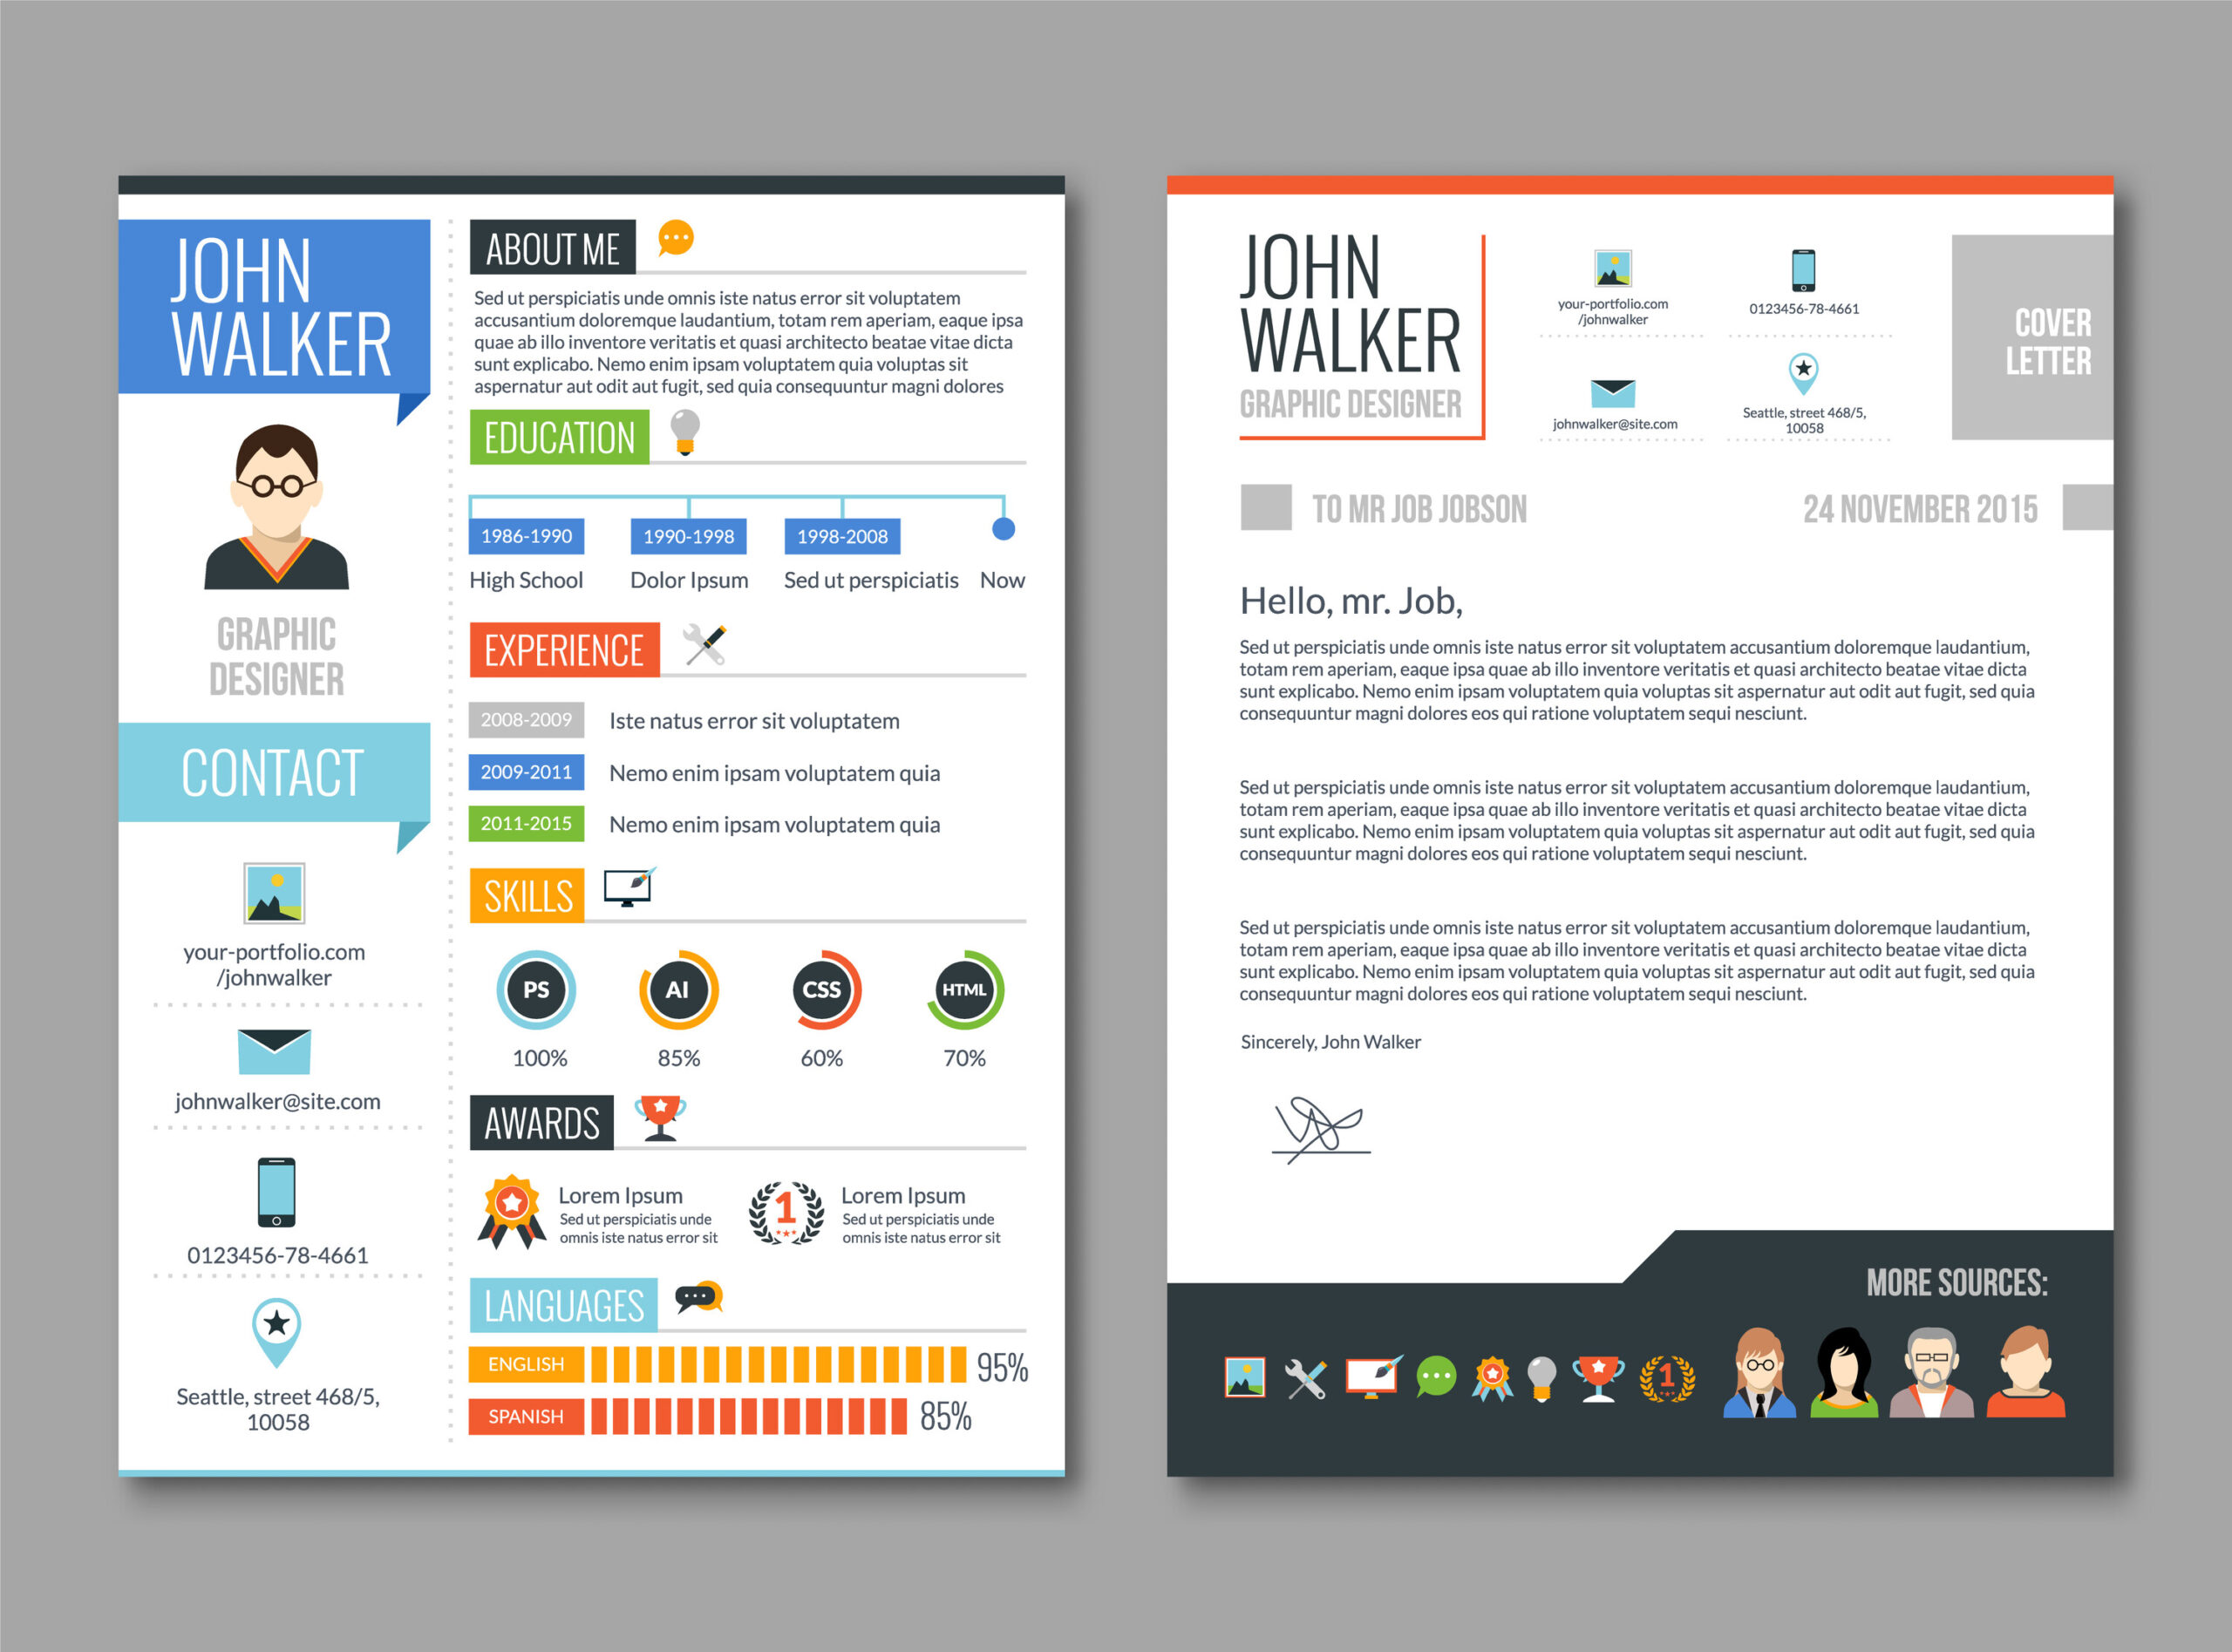 Visual Aids and hyperlinks are great resume supplements and a great way to stand out from the crowd!